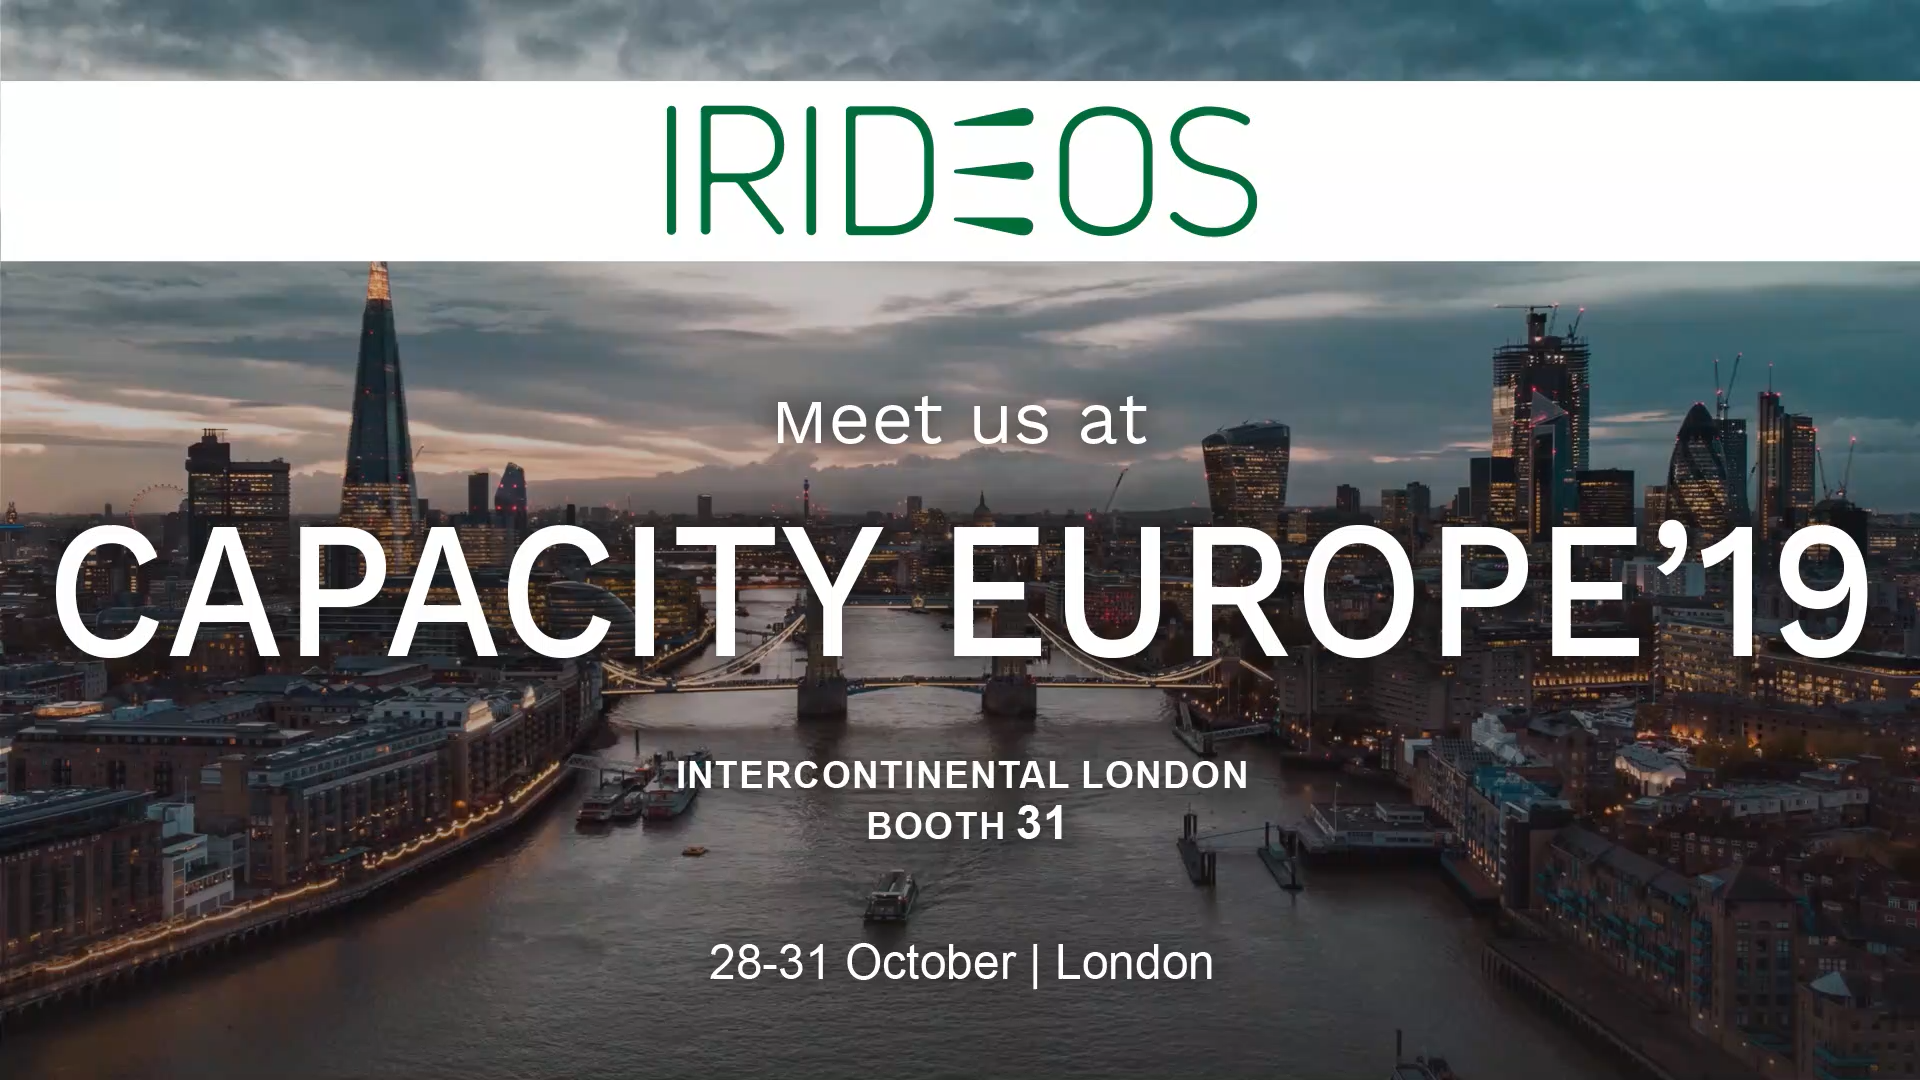 IRIDEOS will attend the Capacity Europe 2019